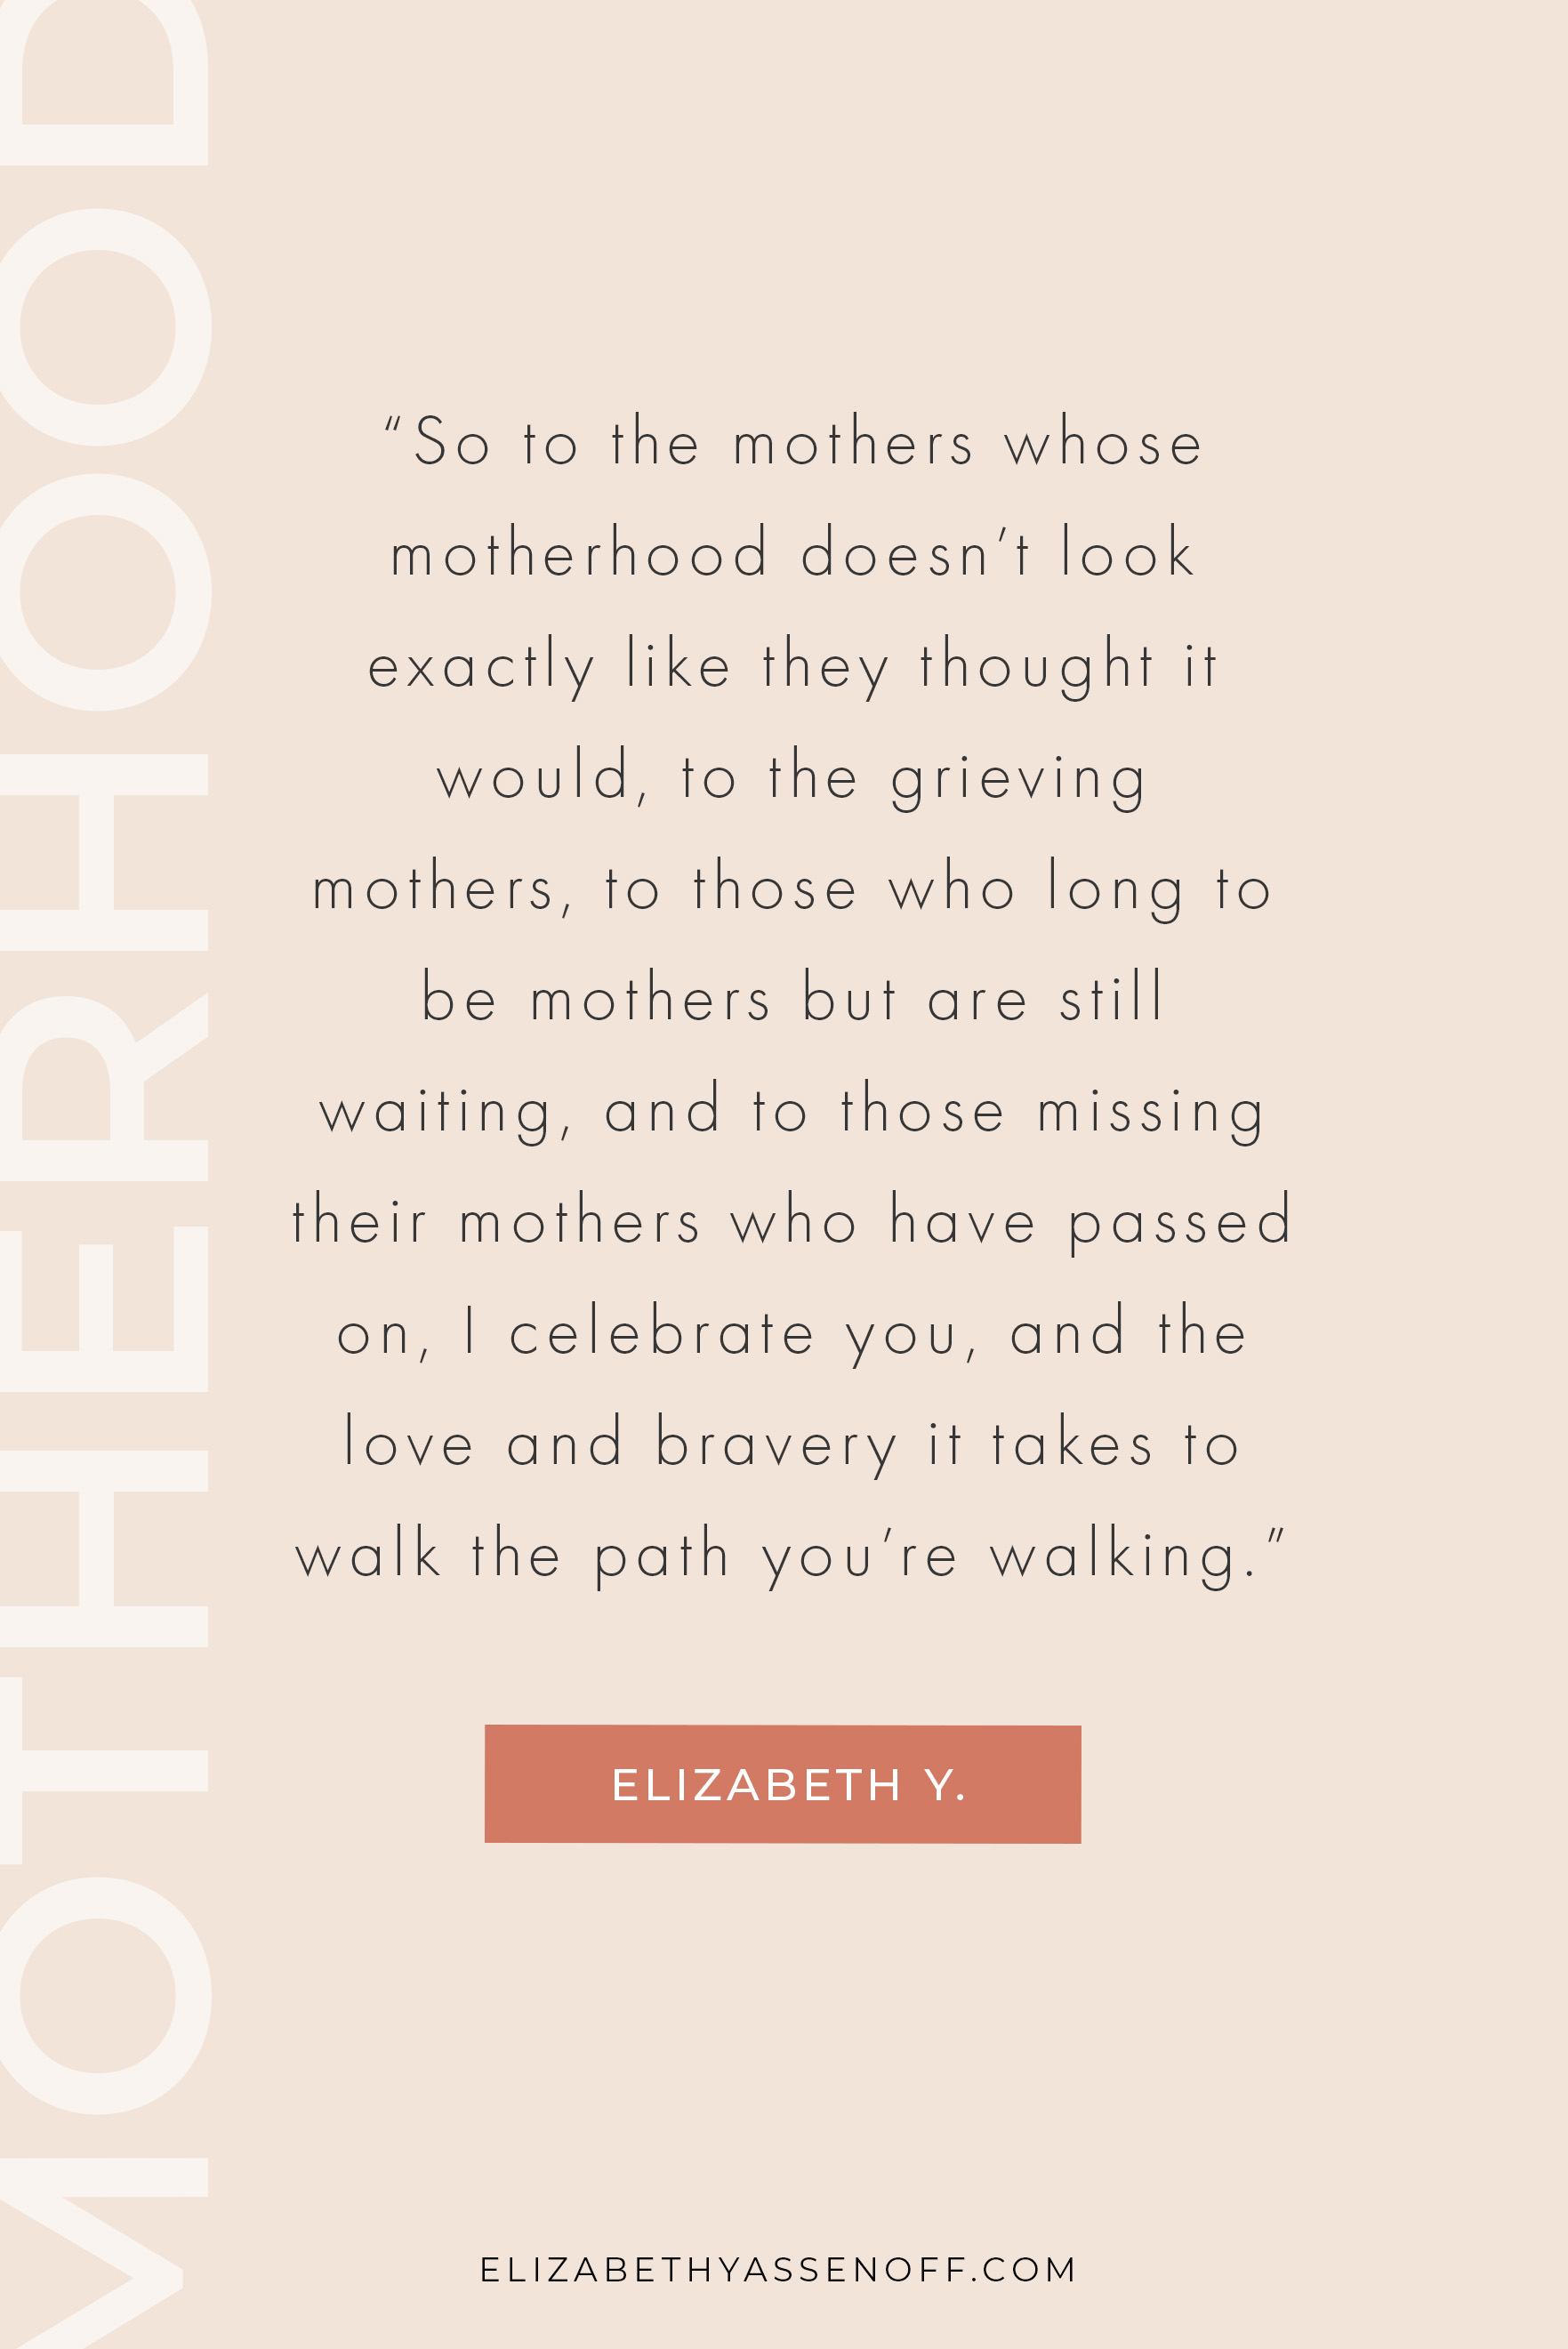 While motherhood is certainly a brave and love-filled journey worthy of celebration, it's not always easy to celebrate Mother's Day when motherhood can be so complicated. To the women who's motherhood doesn't look the way you imagined…